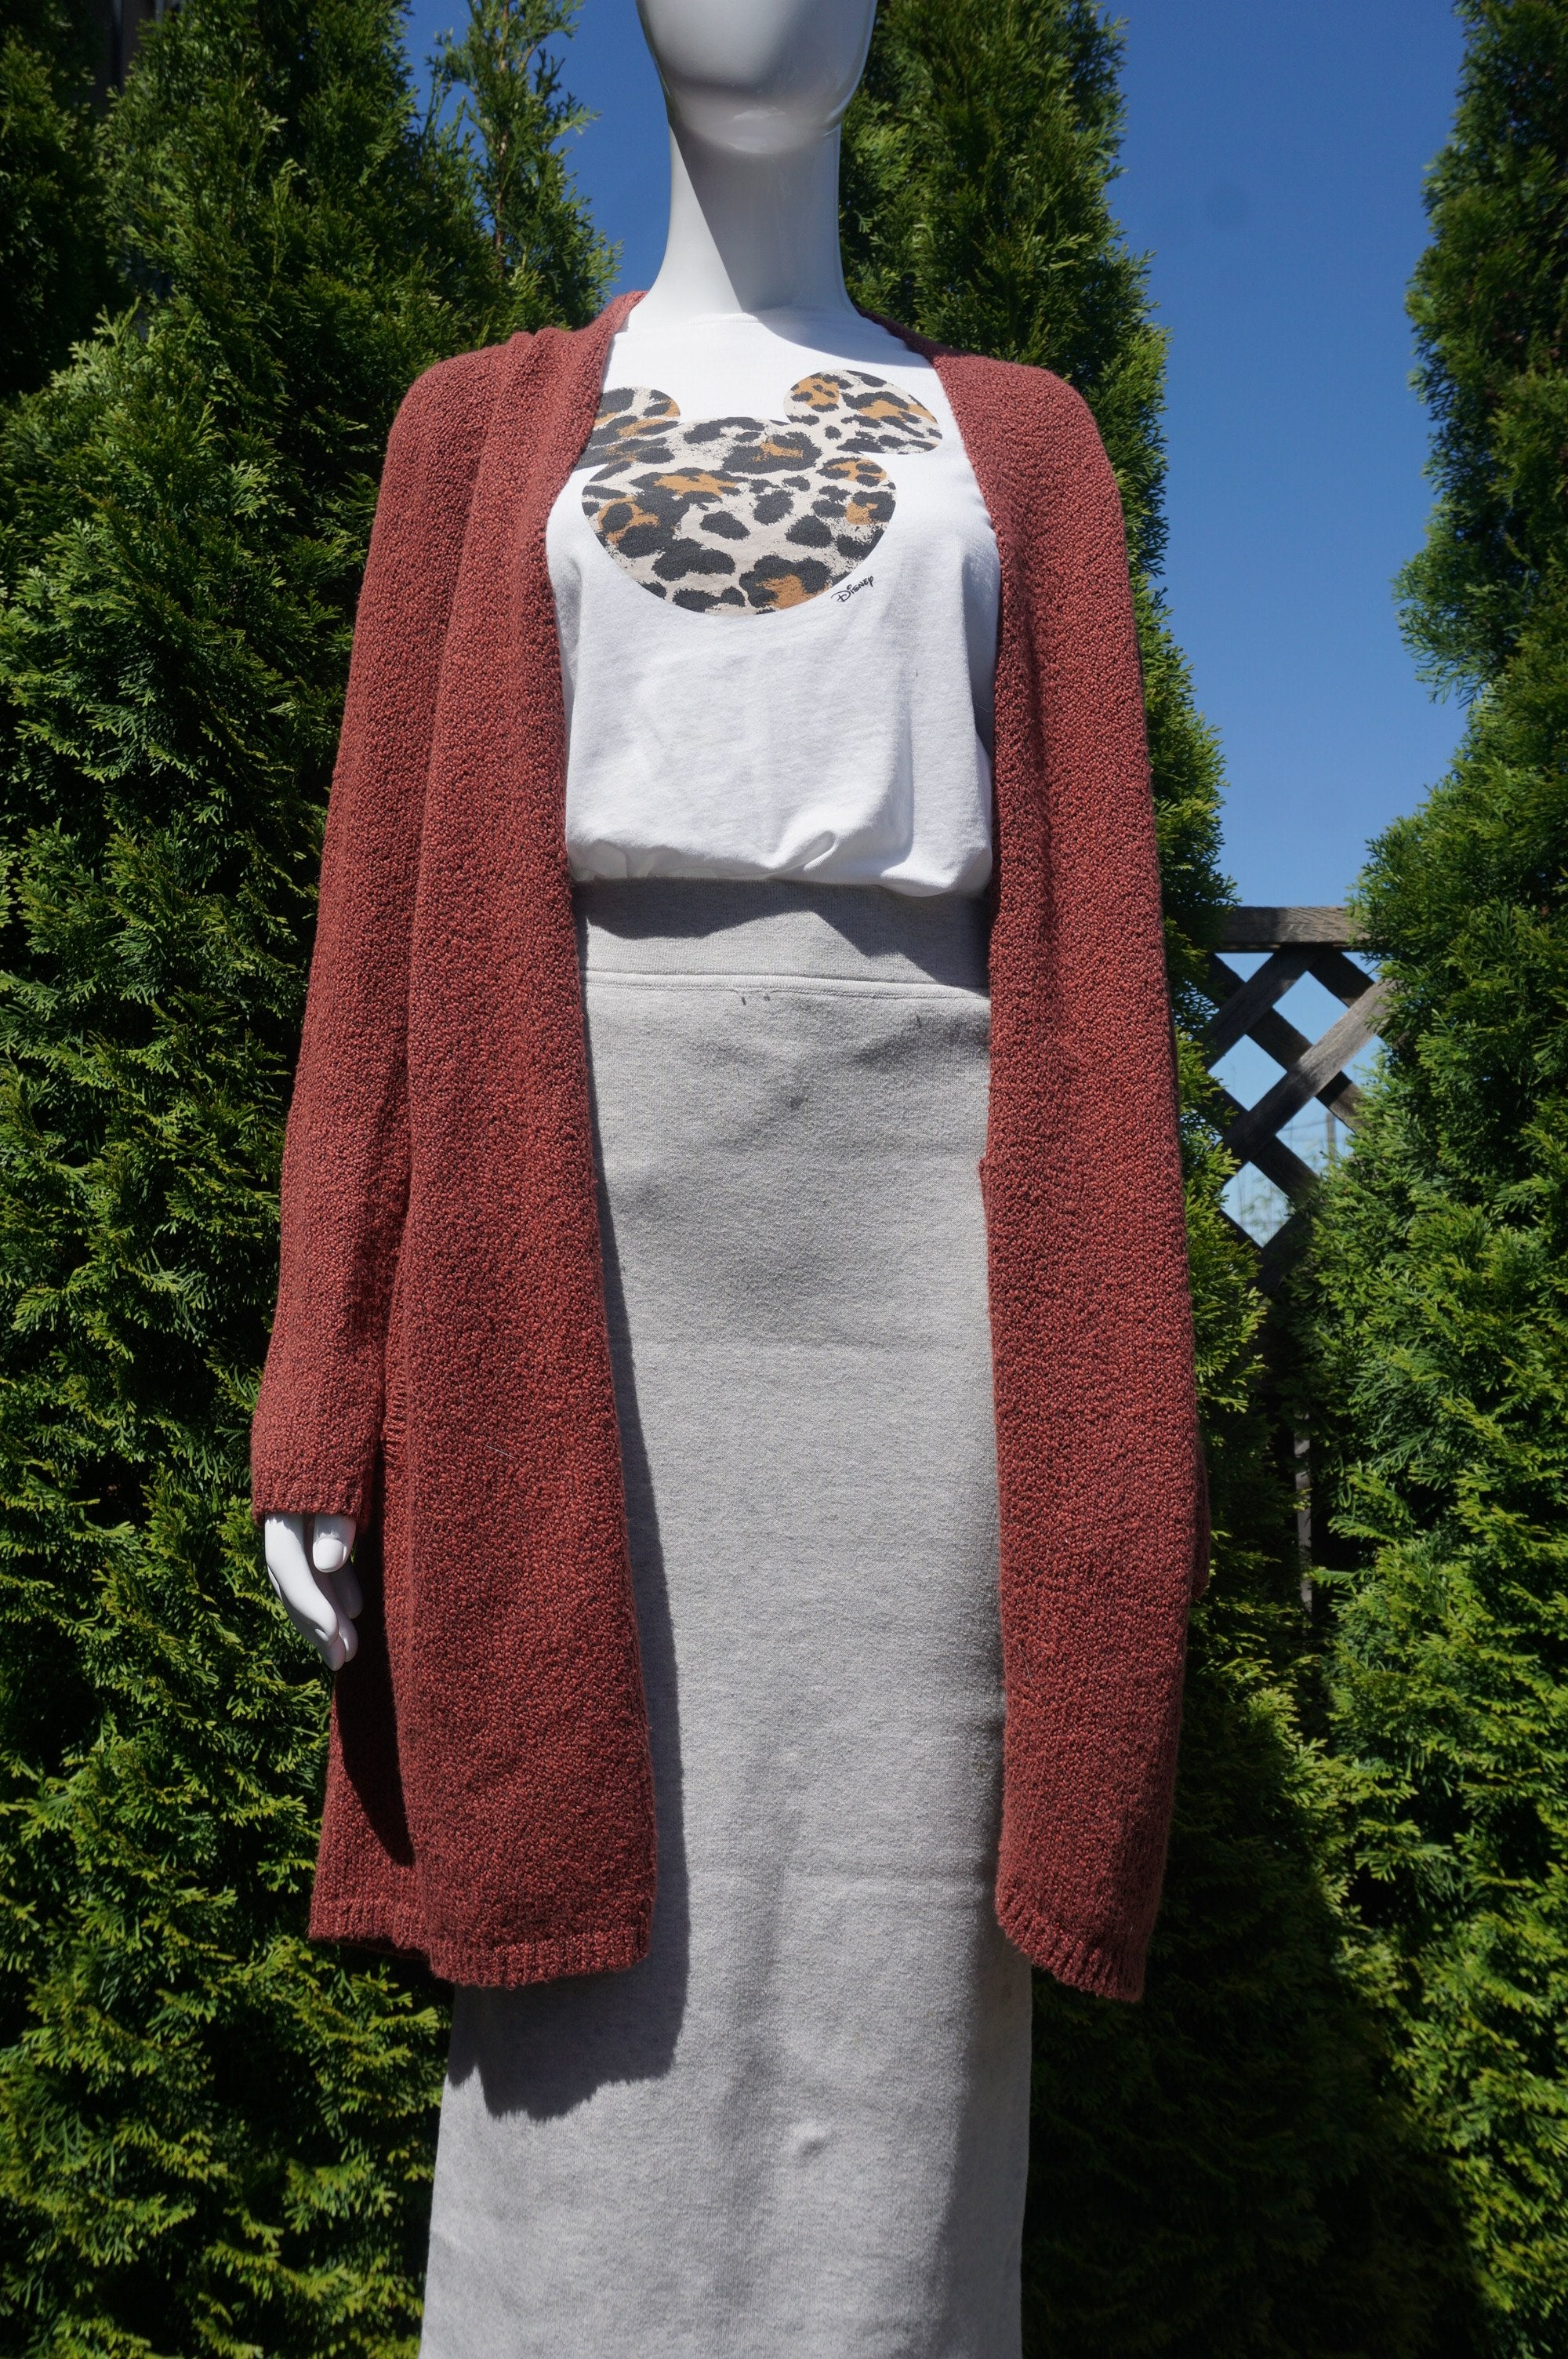 The Group Babaton Long Cardigan, Super comfy long cardigan. Put it on  the chilly evening walks, or whenever you feel like it., Red, 88% Cotton, 12% Polyester, women's Jackets & Coats, women's Red Jackets & Coats, The Group Babaton women's Jackets & Coats,